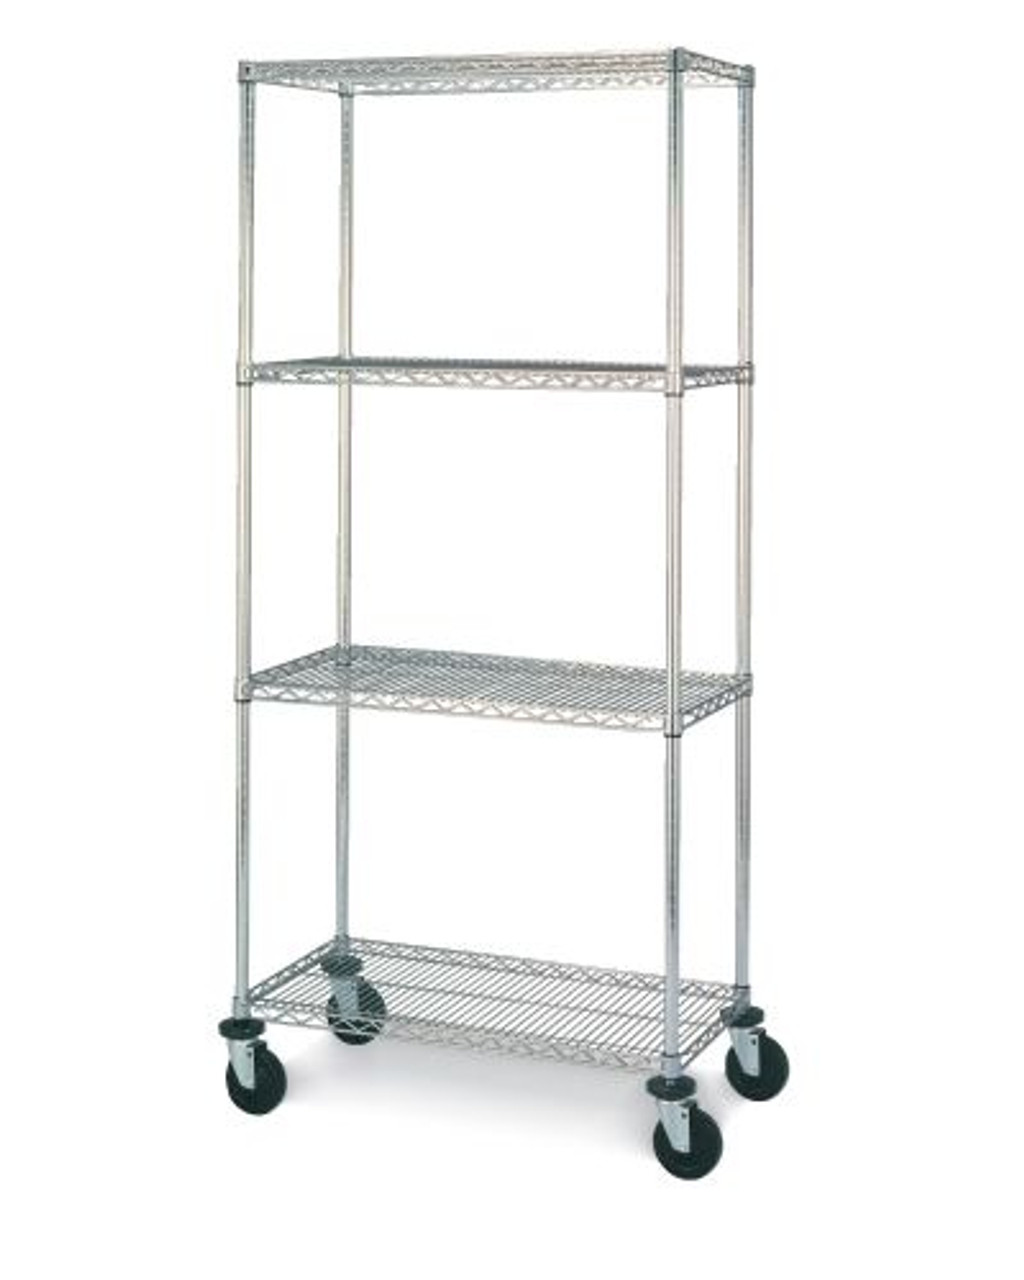 "Olympic 18"" Deep 4 Shelf Mobile Carts - Chrome - 18"" x 42"" x 79"" MJ1842-74UC"